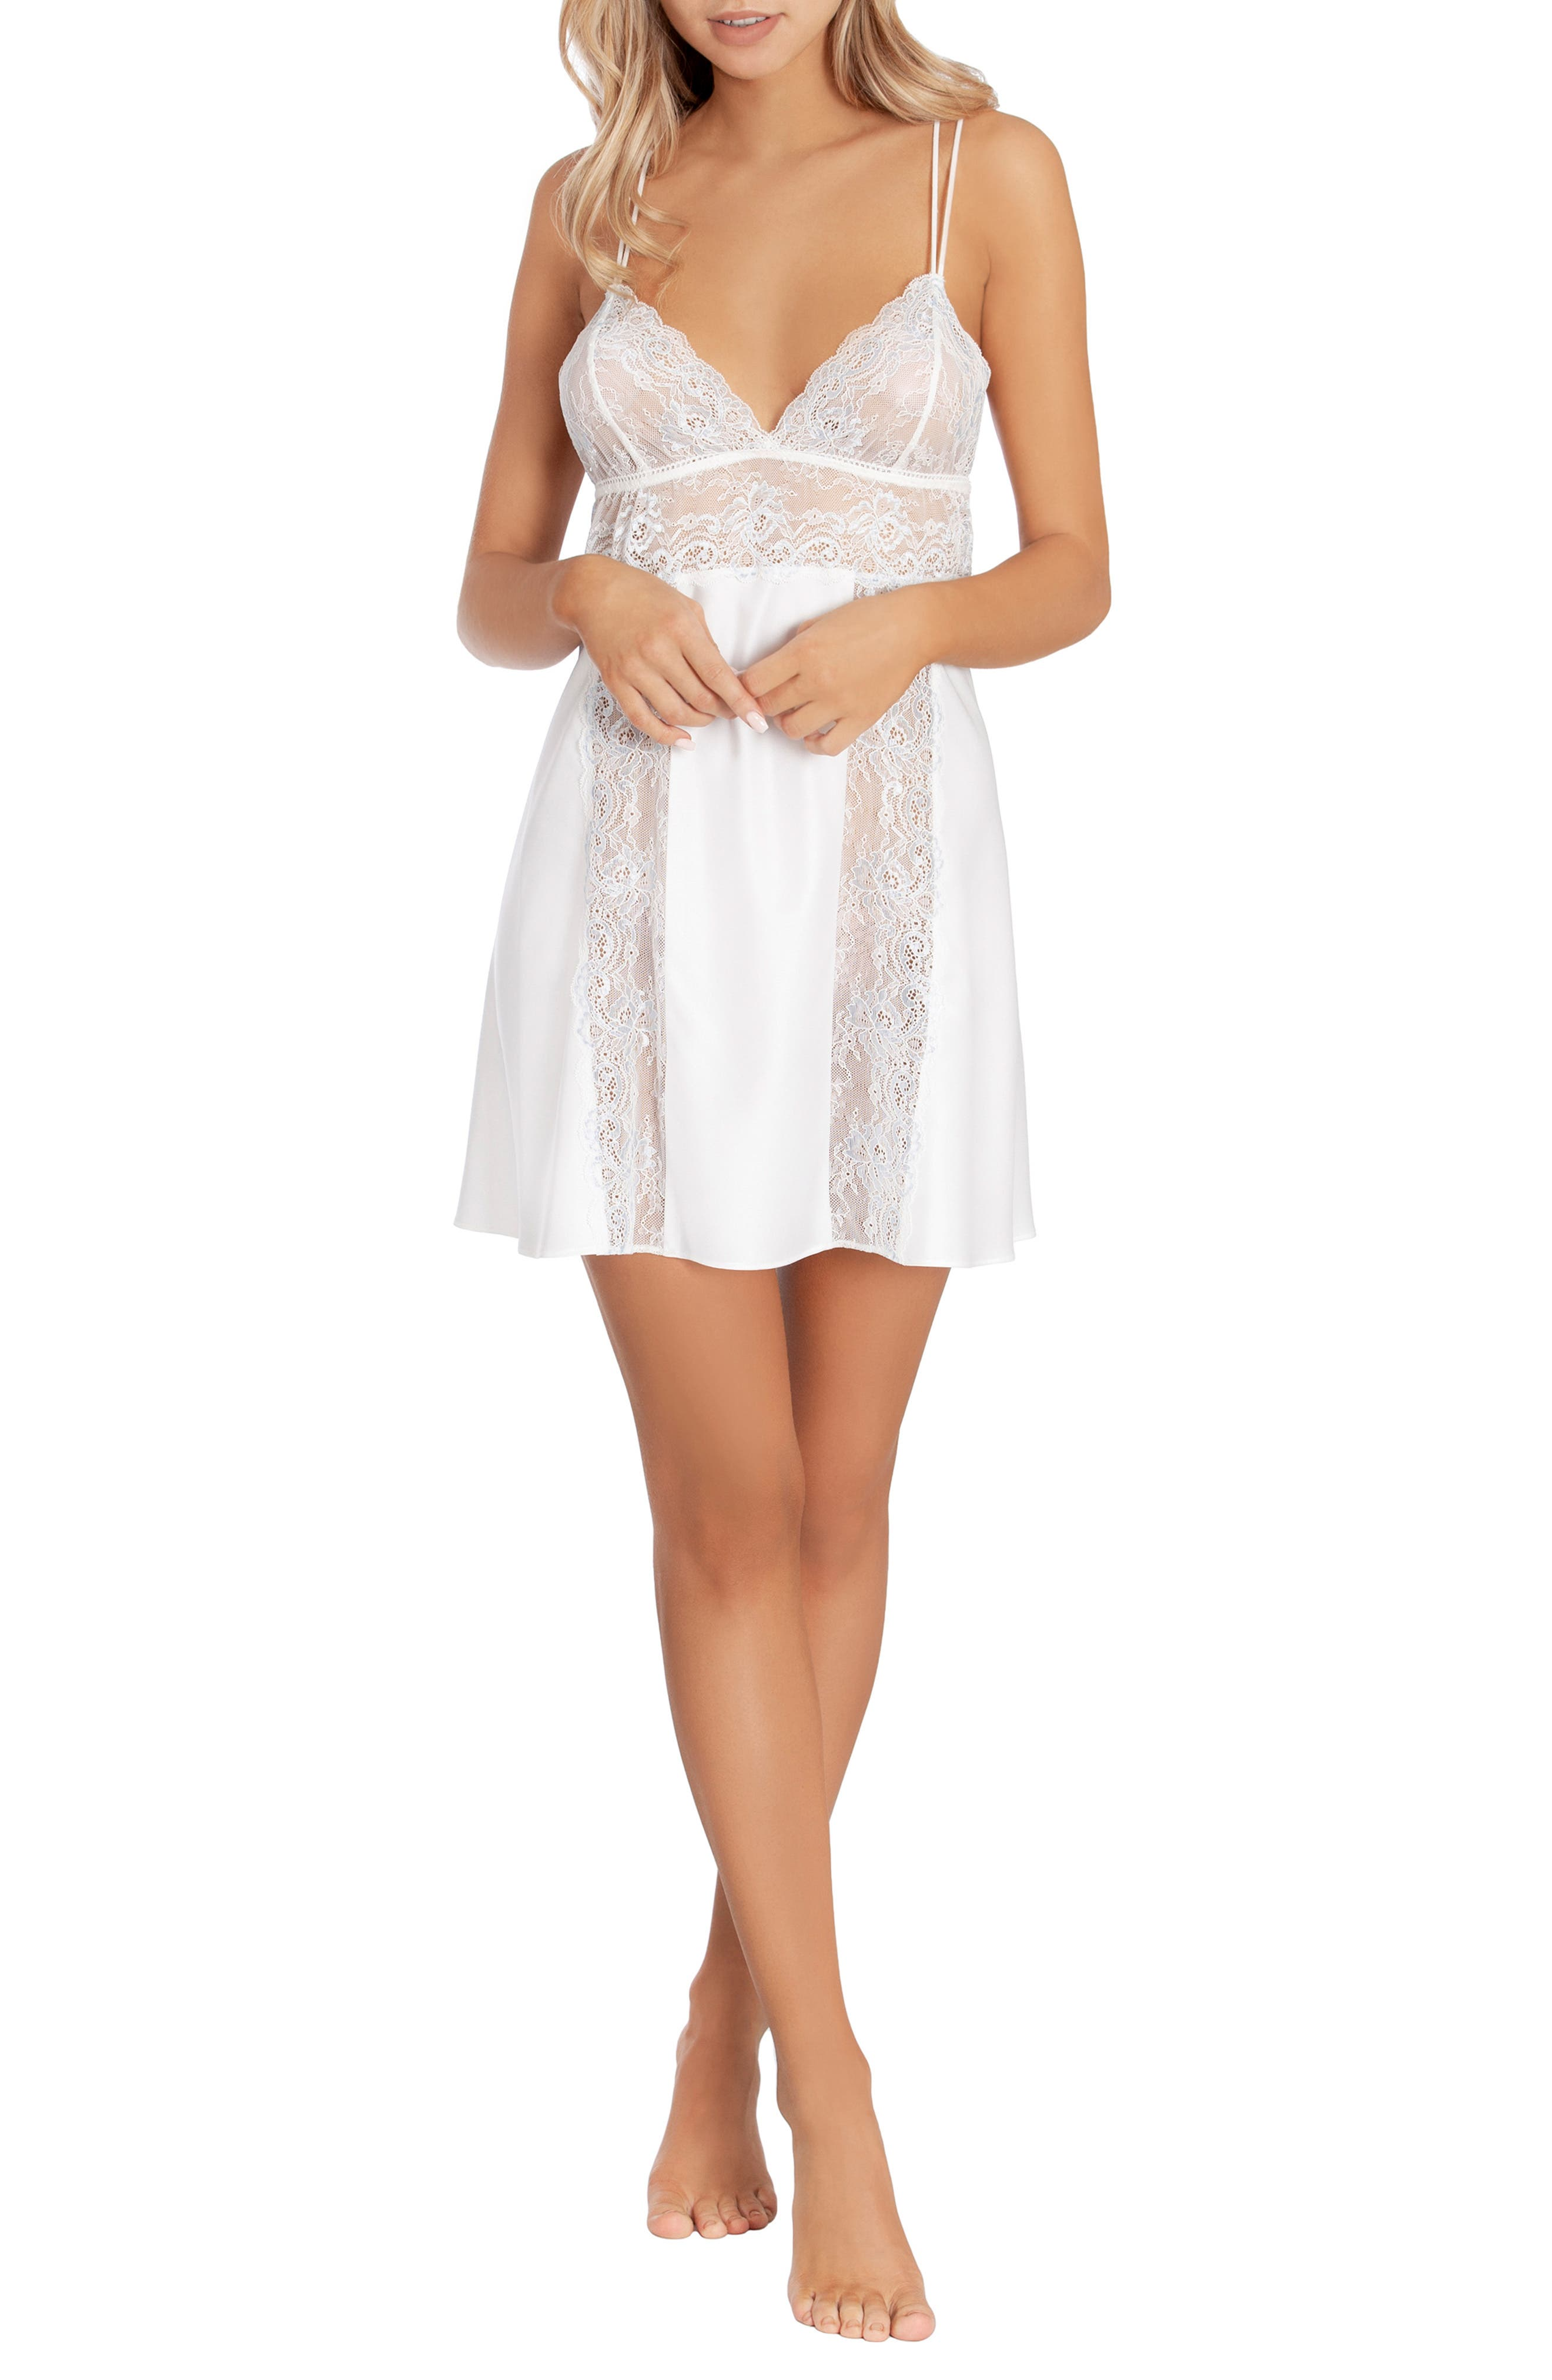 IN BLOOM BY JONQUIL,                             Lace & Satin Chemise,                             Alternate thumbnail 6, color,                             OFF-WHITE